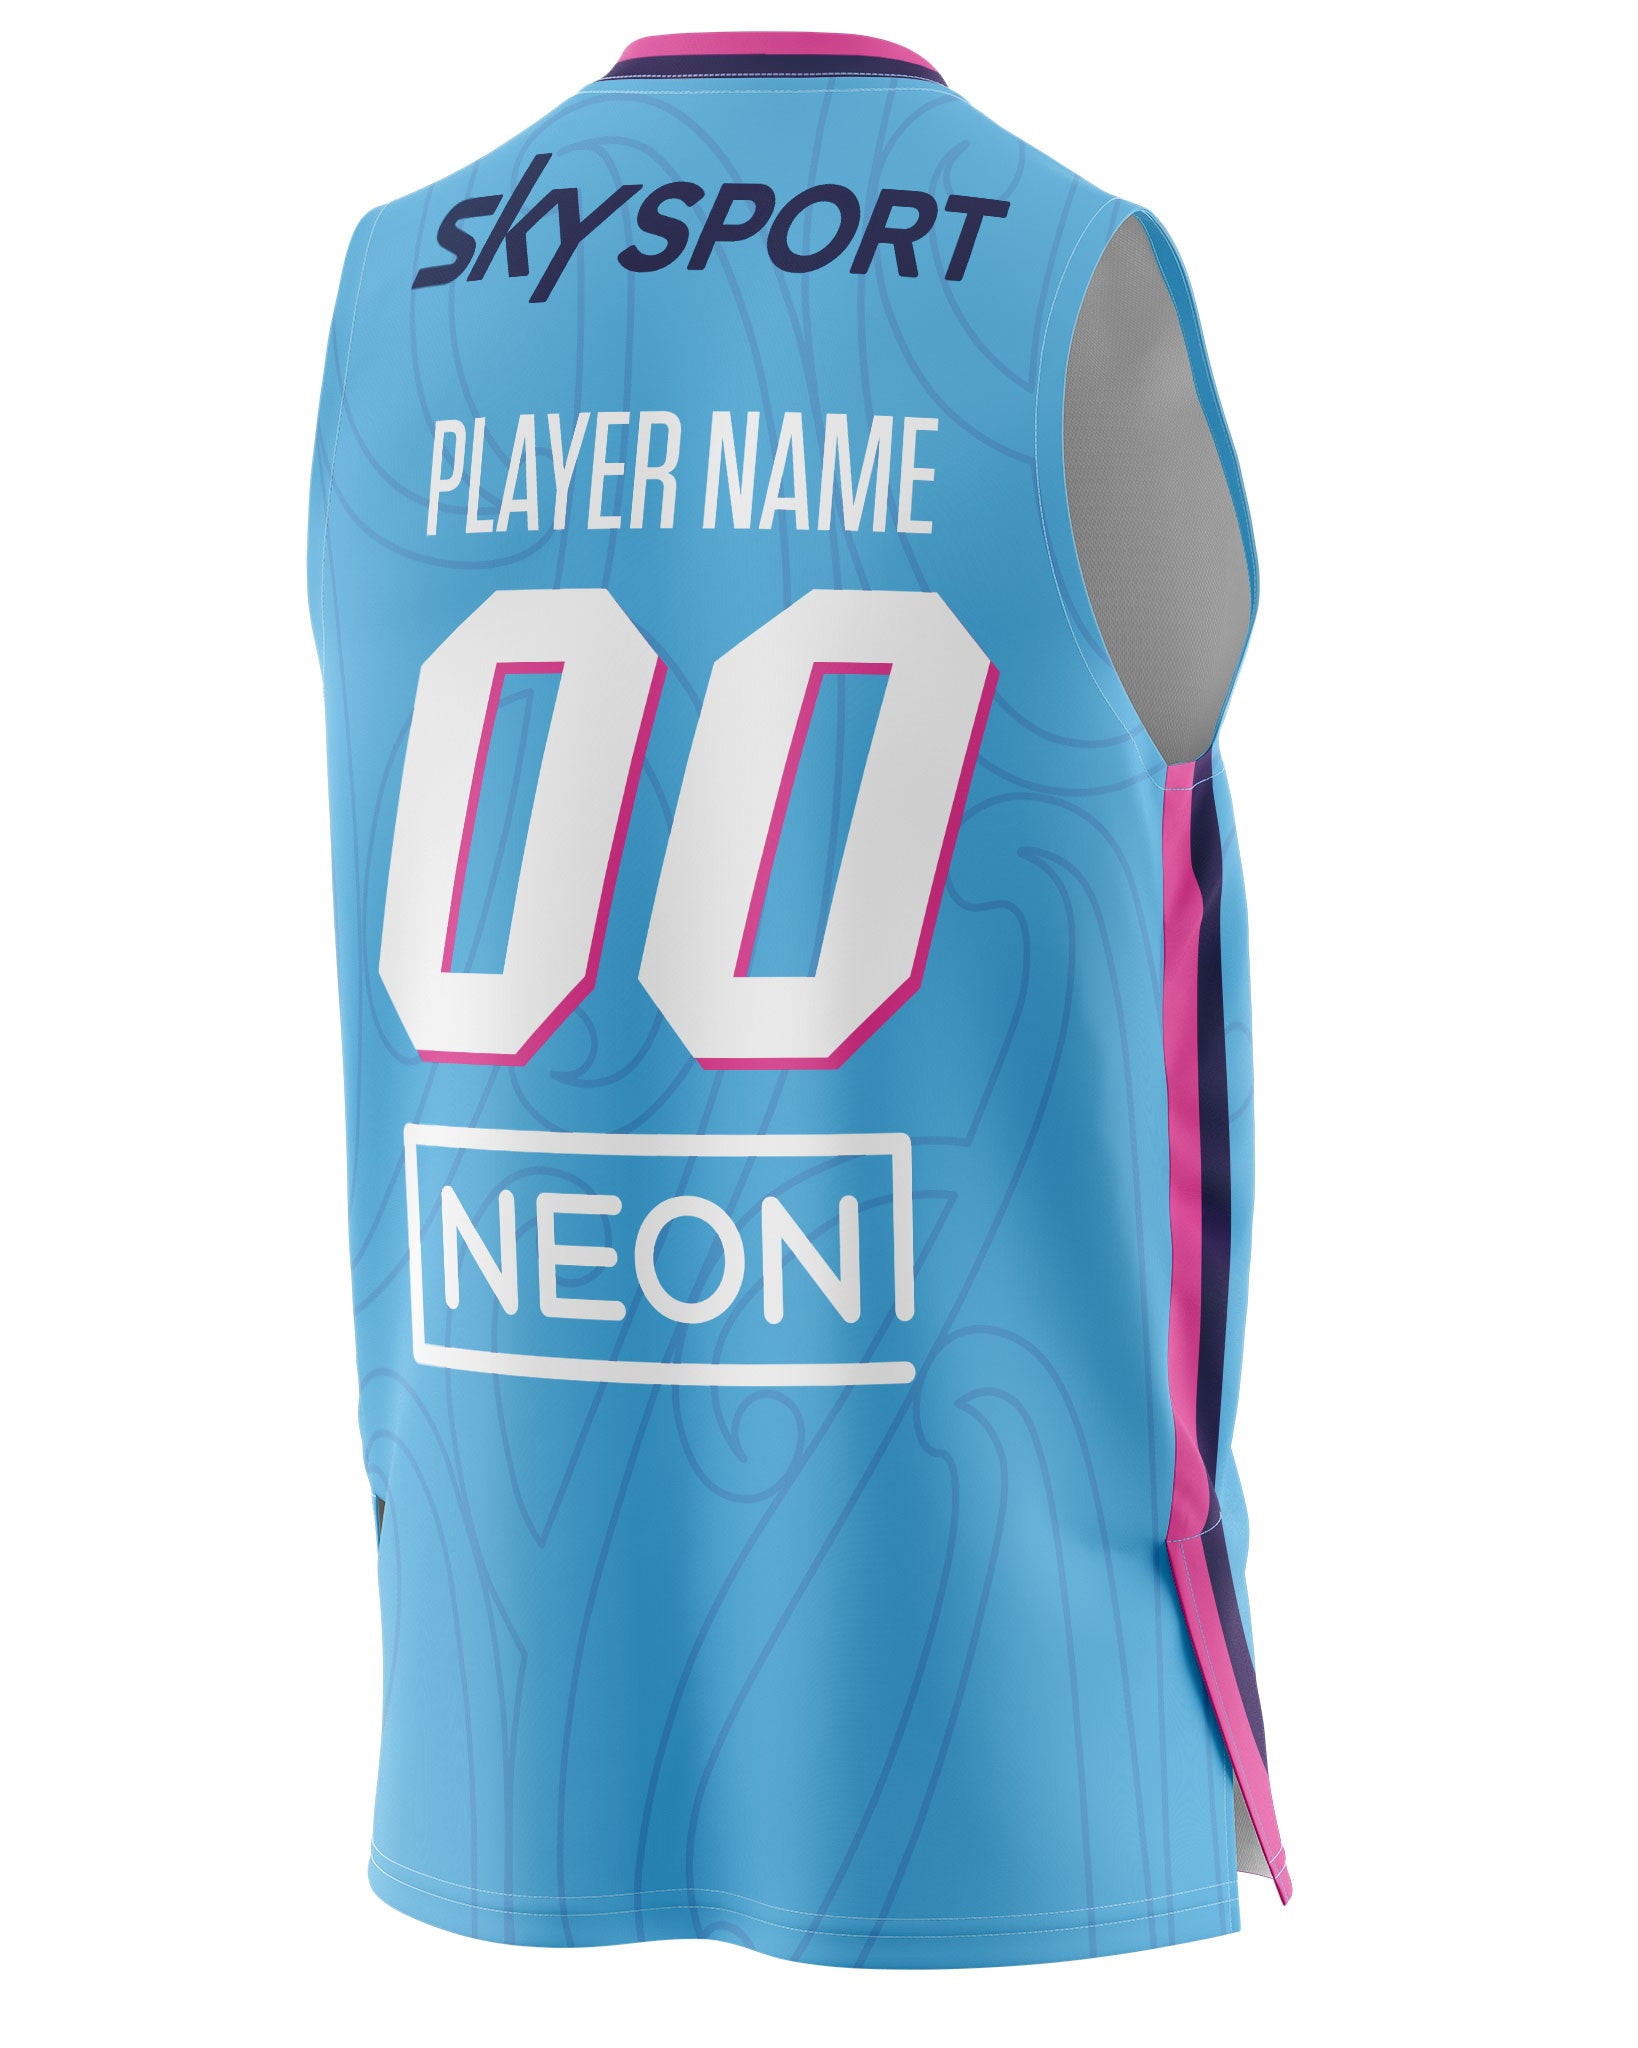 New Zealand Breakers 20/21 Authentic Away Jersey - Other Players